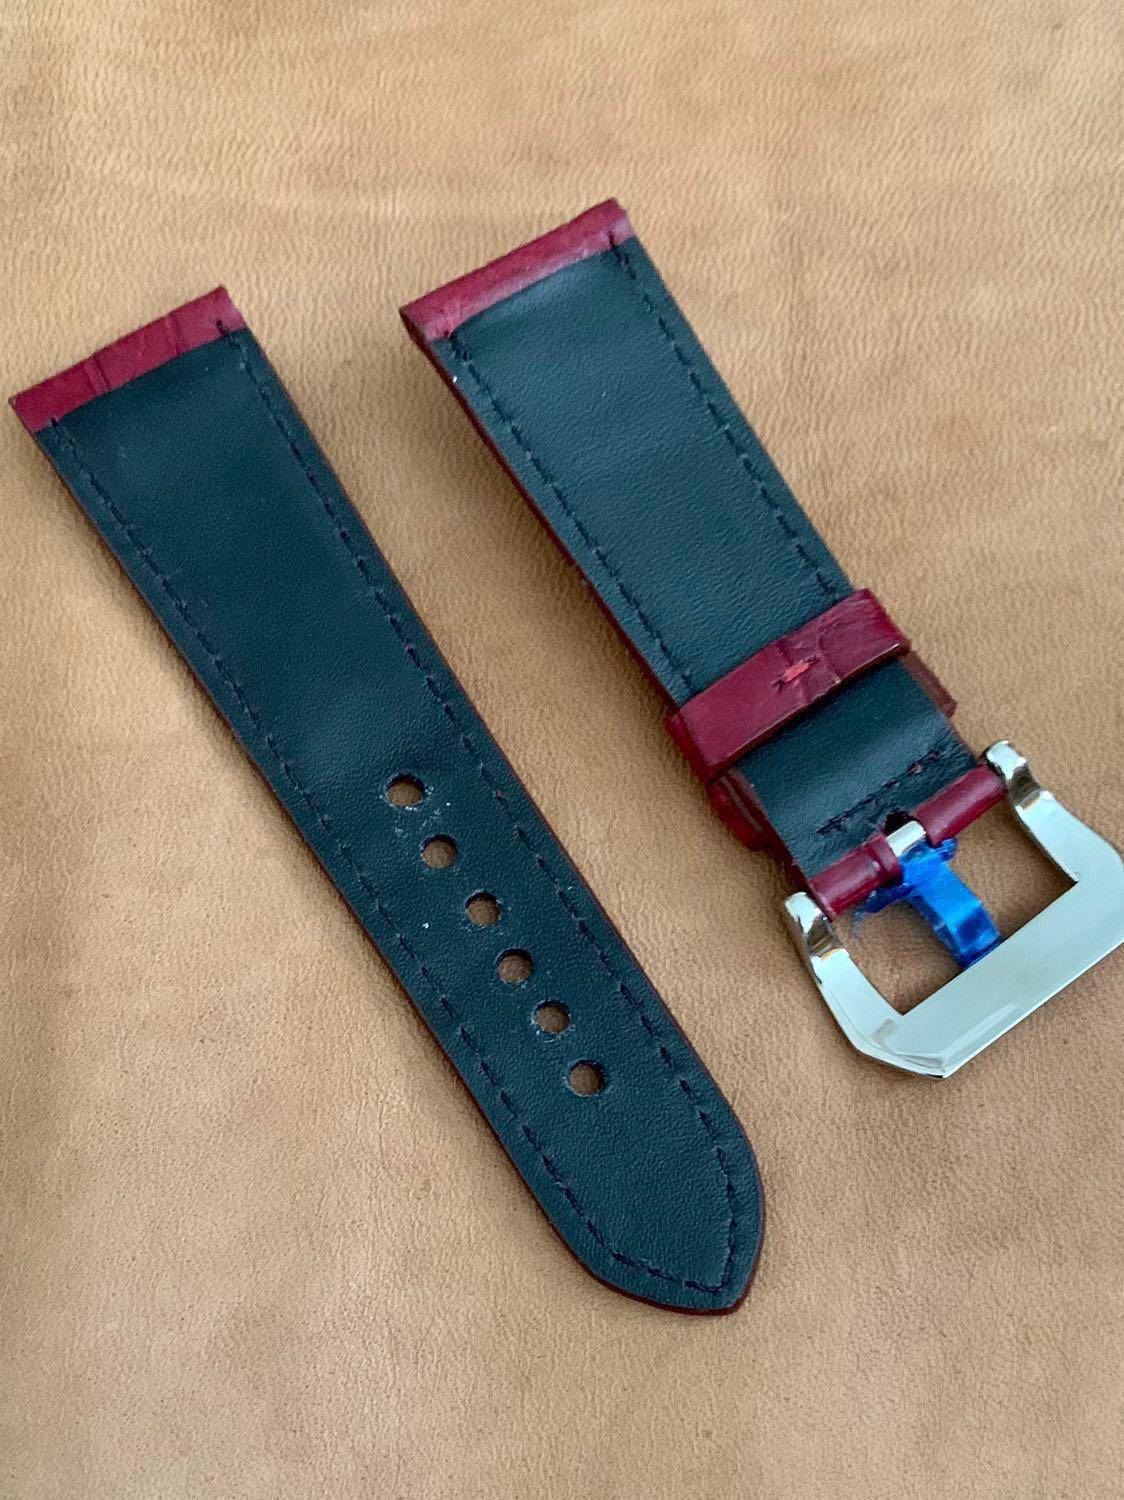 Rich Burgundy Brown Crocodile Alligator Watch Strap 26mm@lug/22mm@buckle #MRTHougang #MRTSerangoon #MRTSengkang #MRTPunggol #MRTRaffles  #MRTBedok #MRTTampines #MRTCCK #MRTJurongEast #MRTYishun